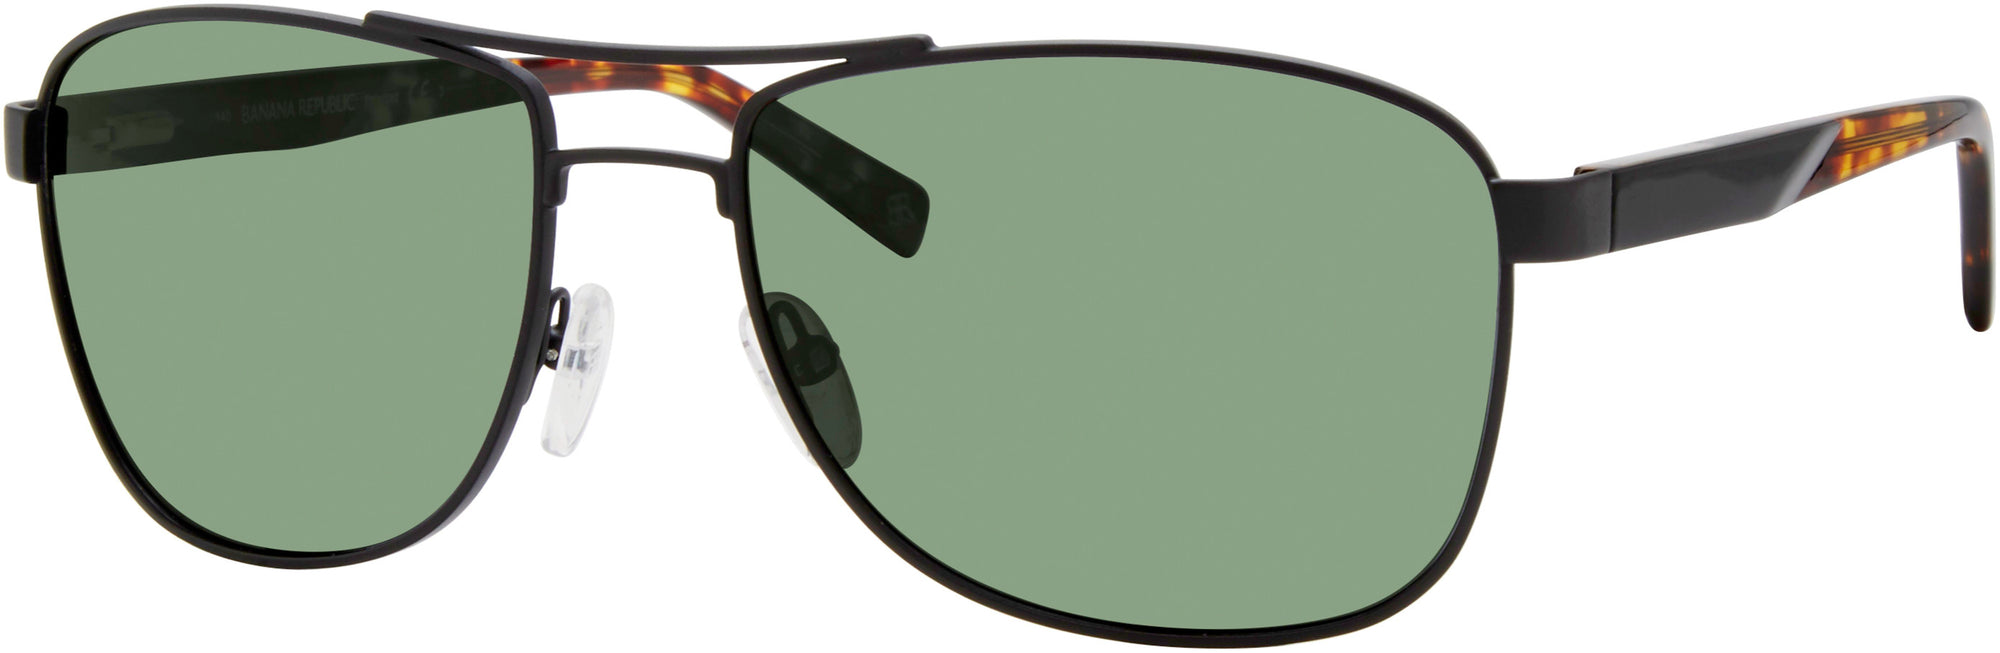 Banana Republic Axel/S Navigator Sunglasses 0003-0003  Matte Black (M9 Gray Pz)